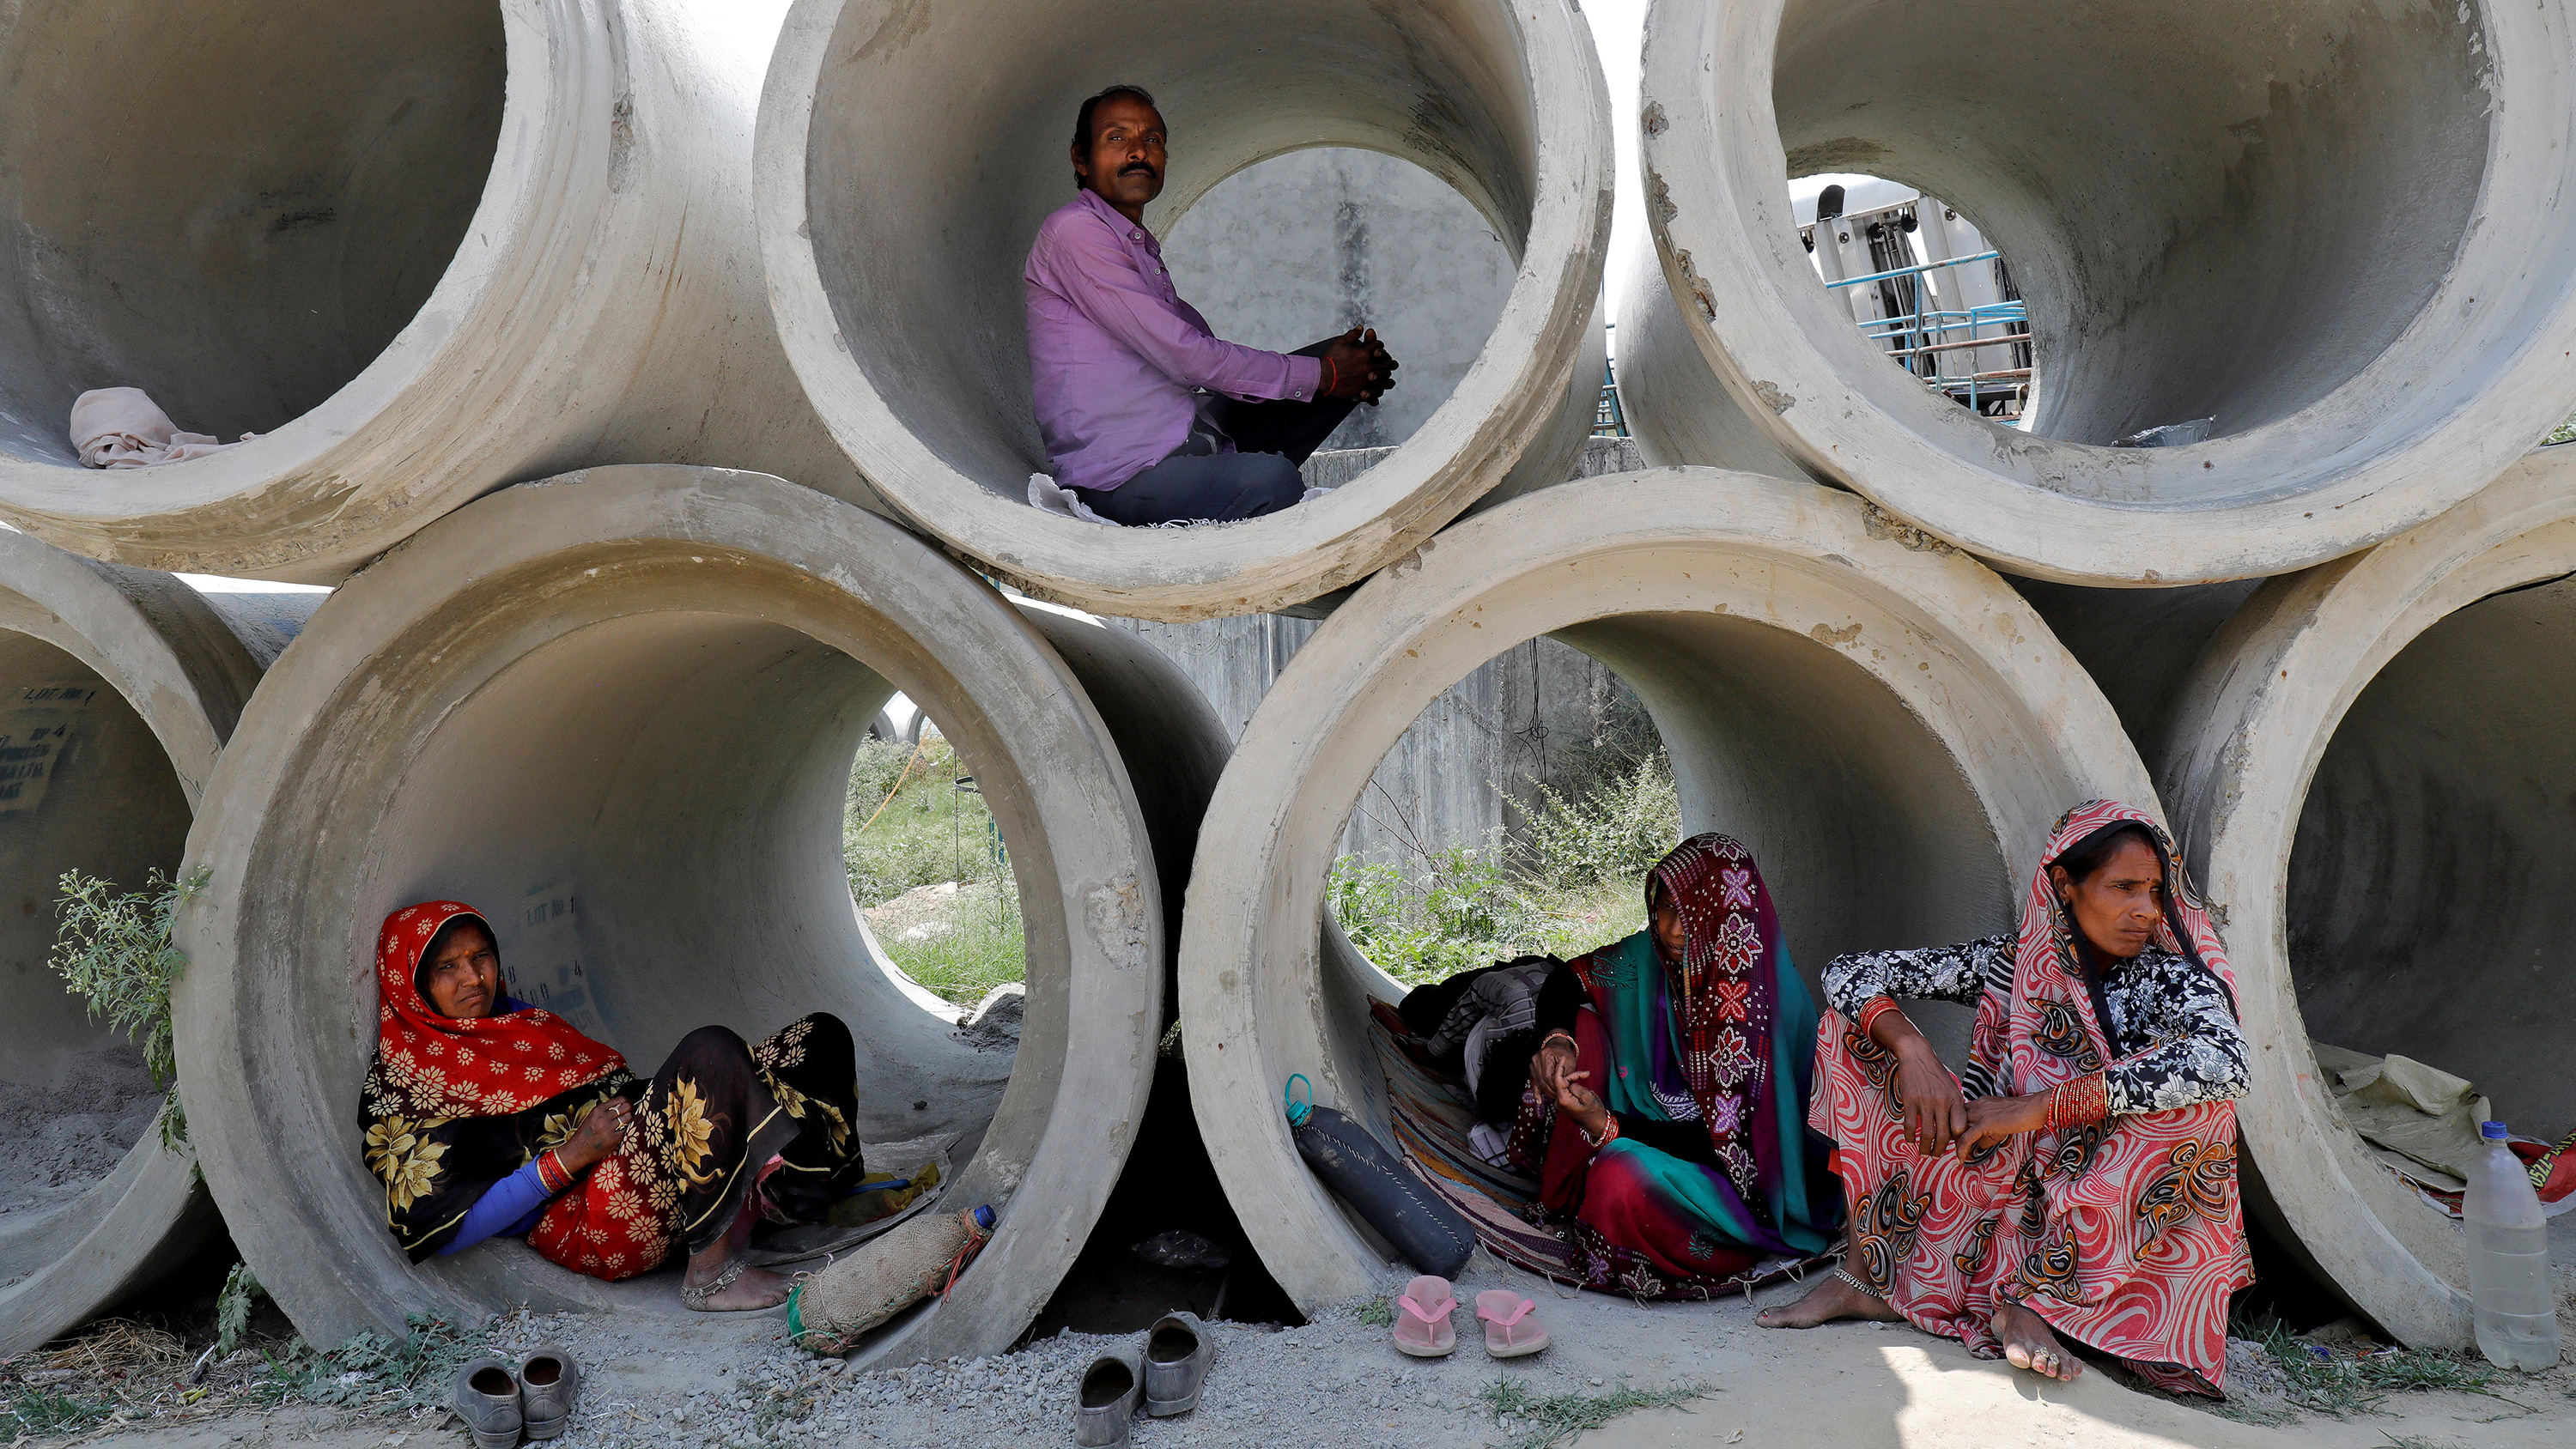 This is a powerful image of people inside stacked cement pipes of large enough diameter for them to camp out in.